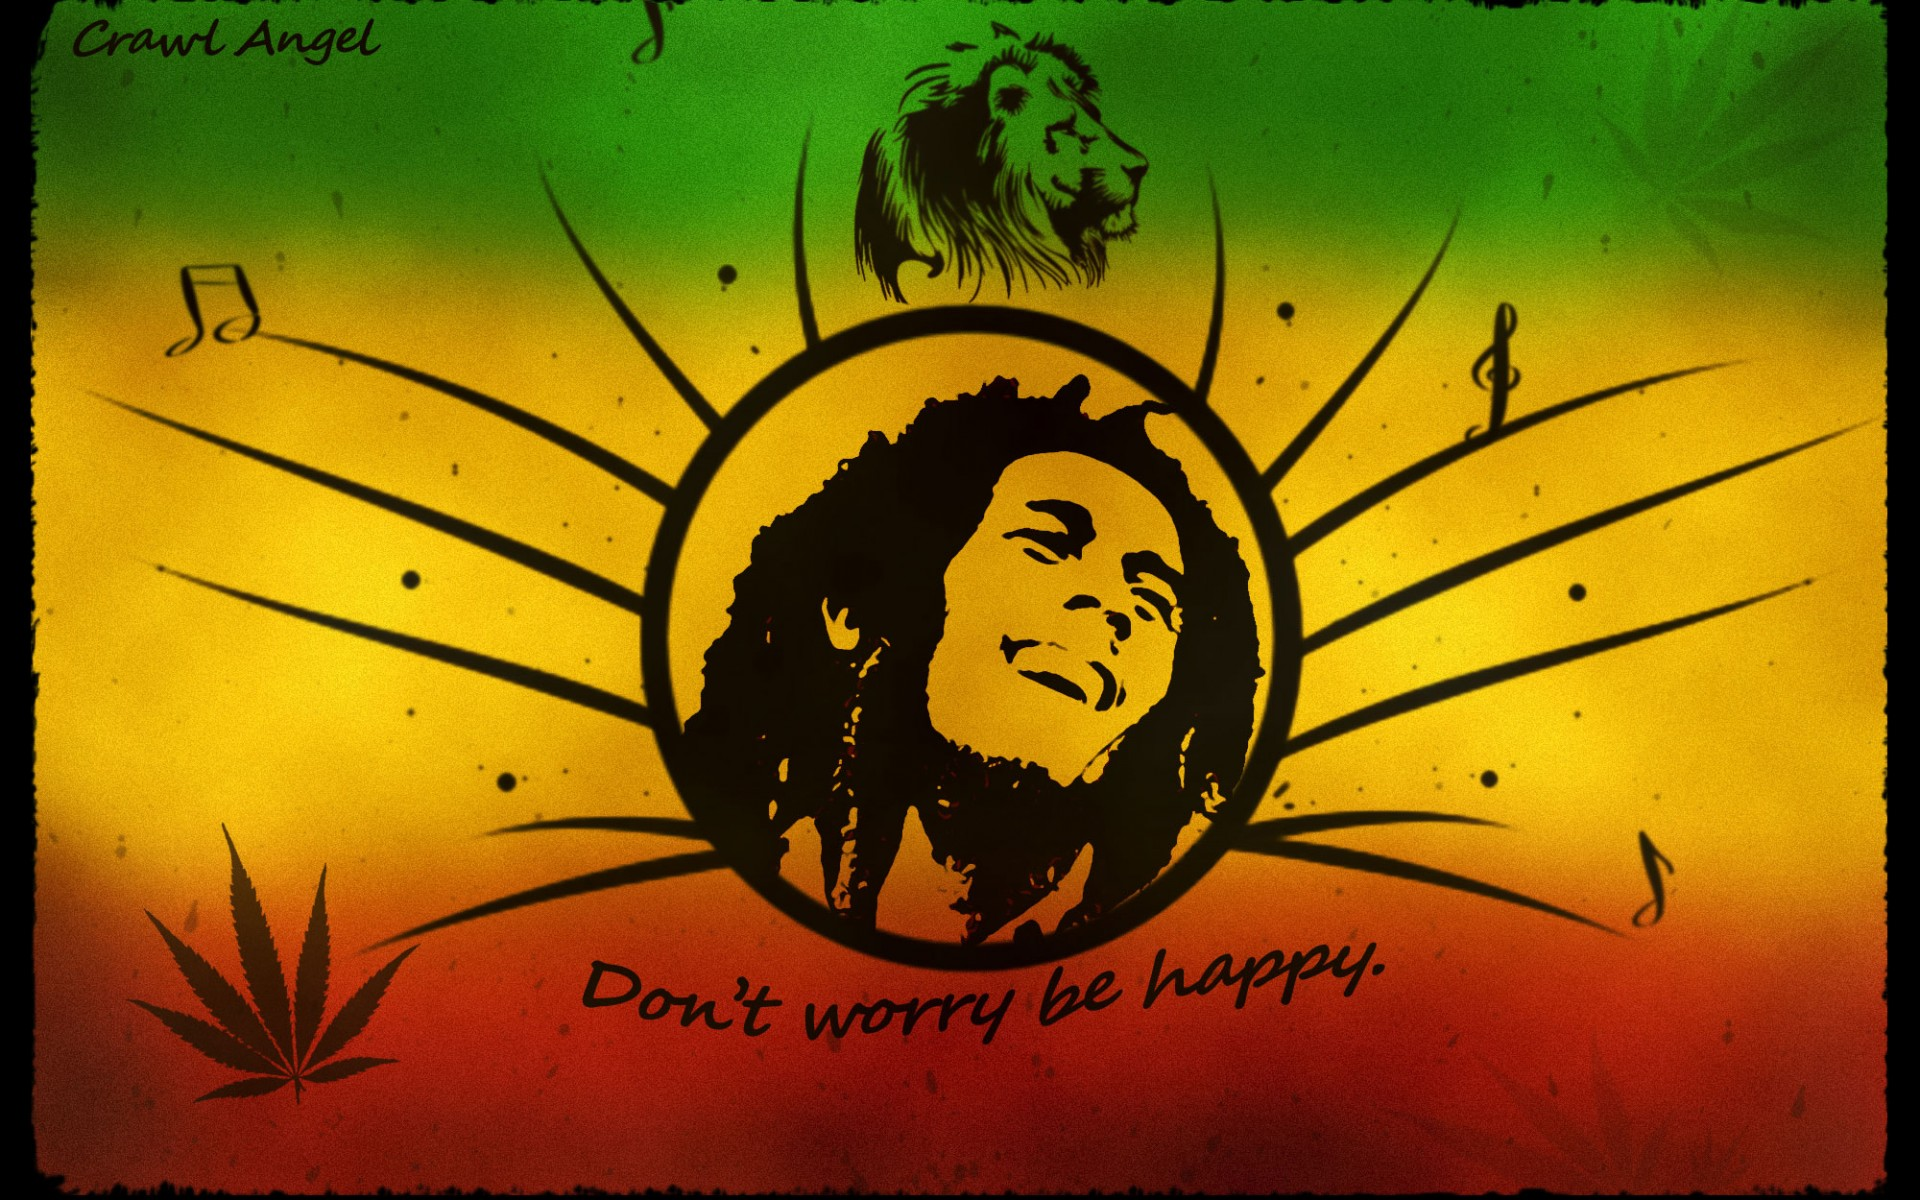 Marley Wallpapers 4k For Your Phone And Desktop Screen